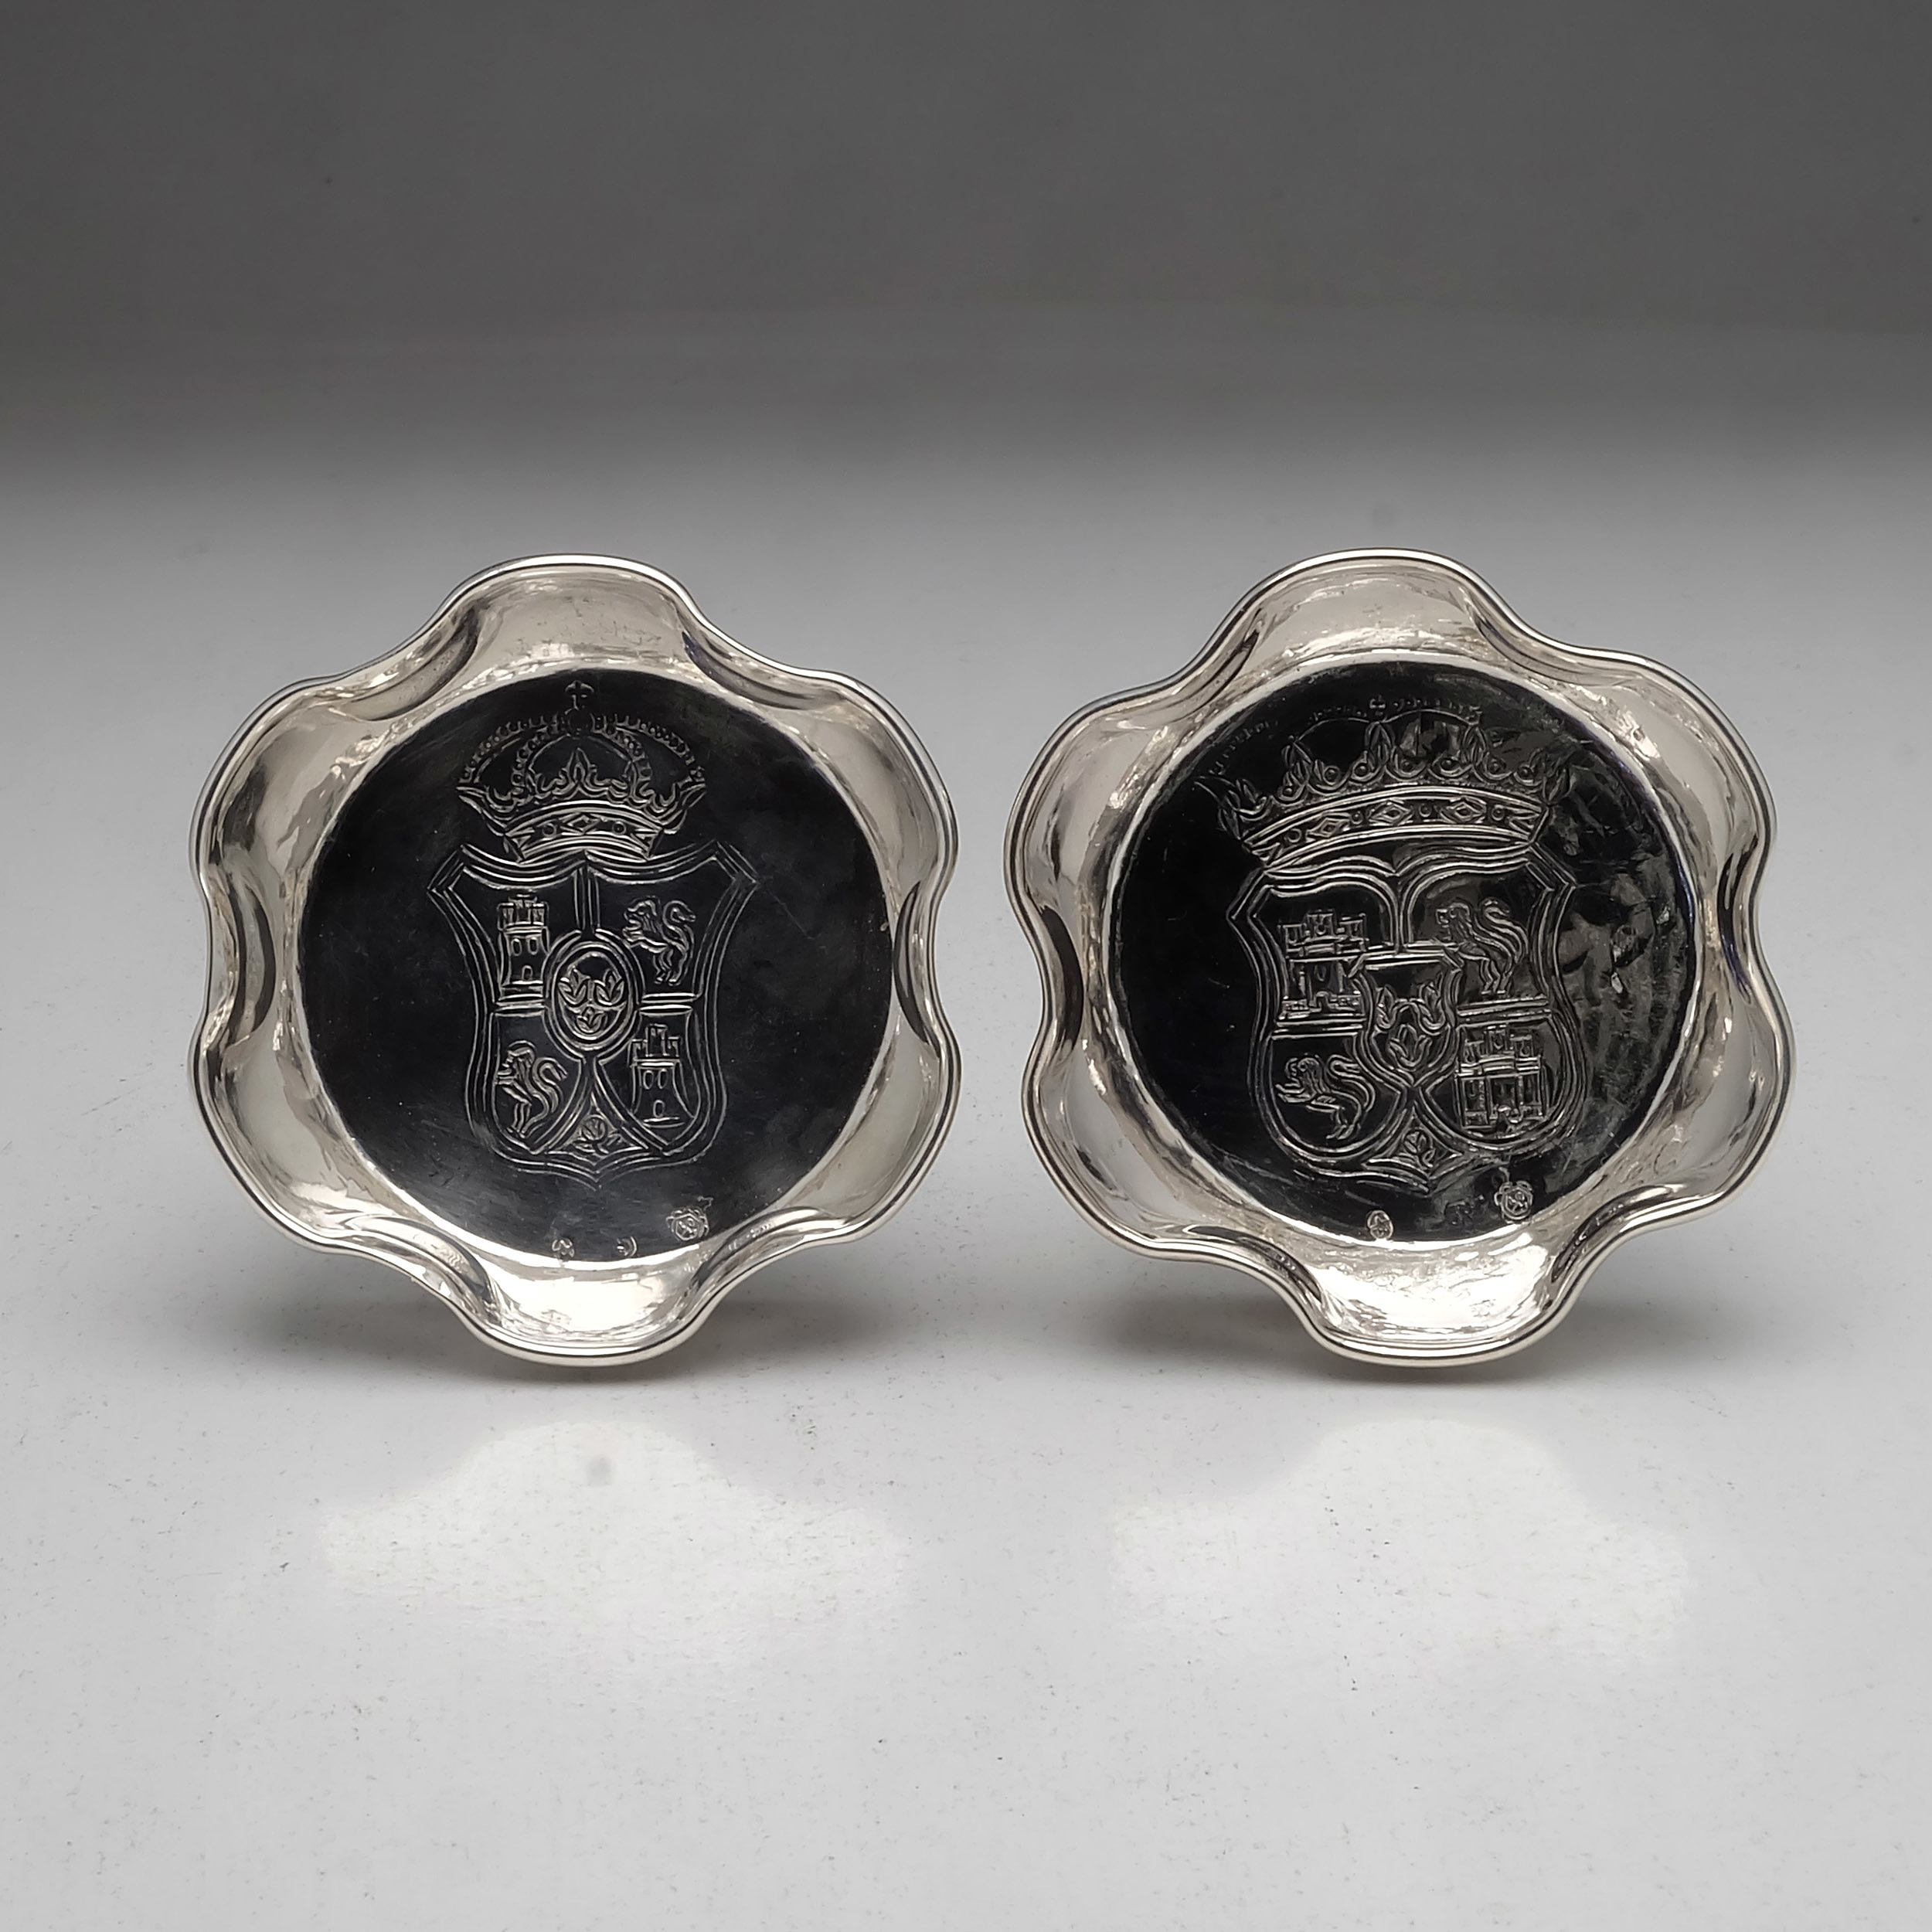 'Pair of Crested Spanish Silver Bonbon Dishes, Lopez, Madrid 91g'